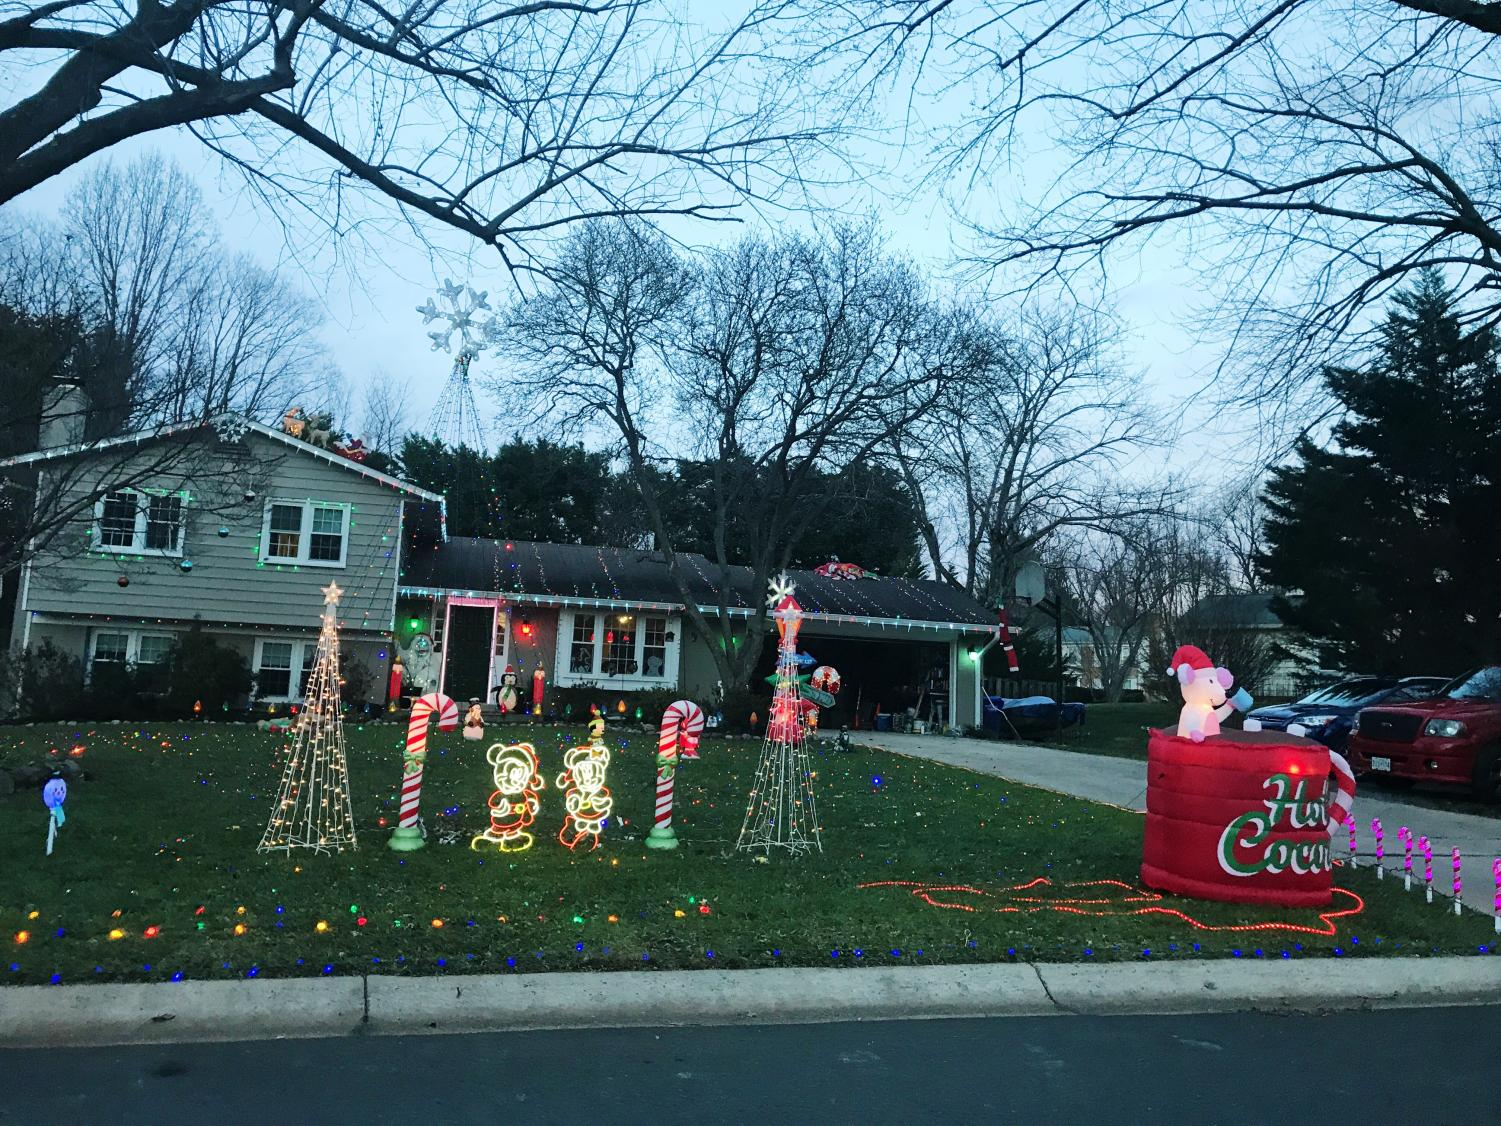 The Fenton family puts up lights and decorations on their lawn, roof and in front of their house to get into the holiday spirit.